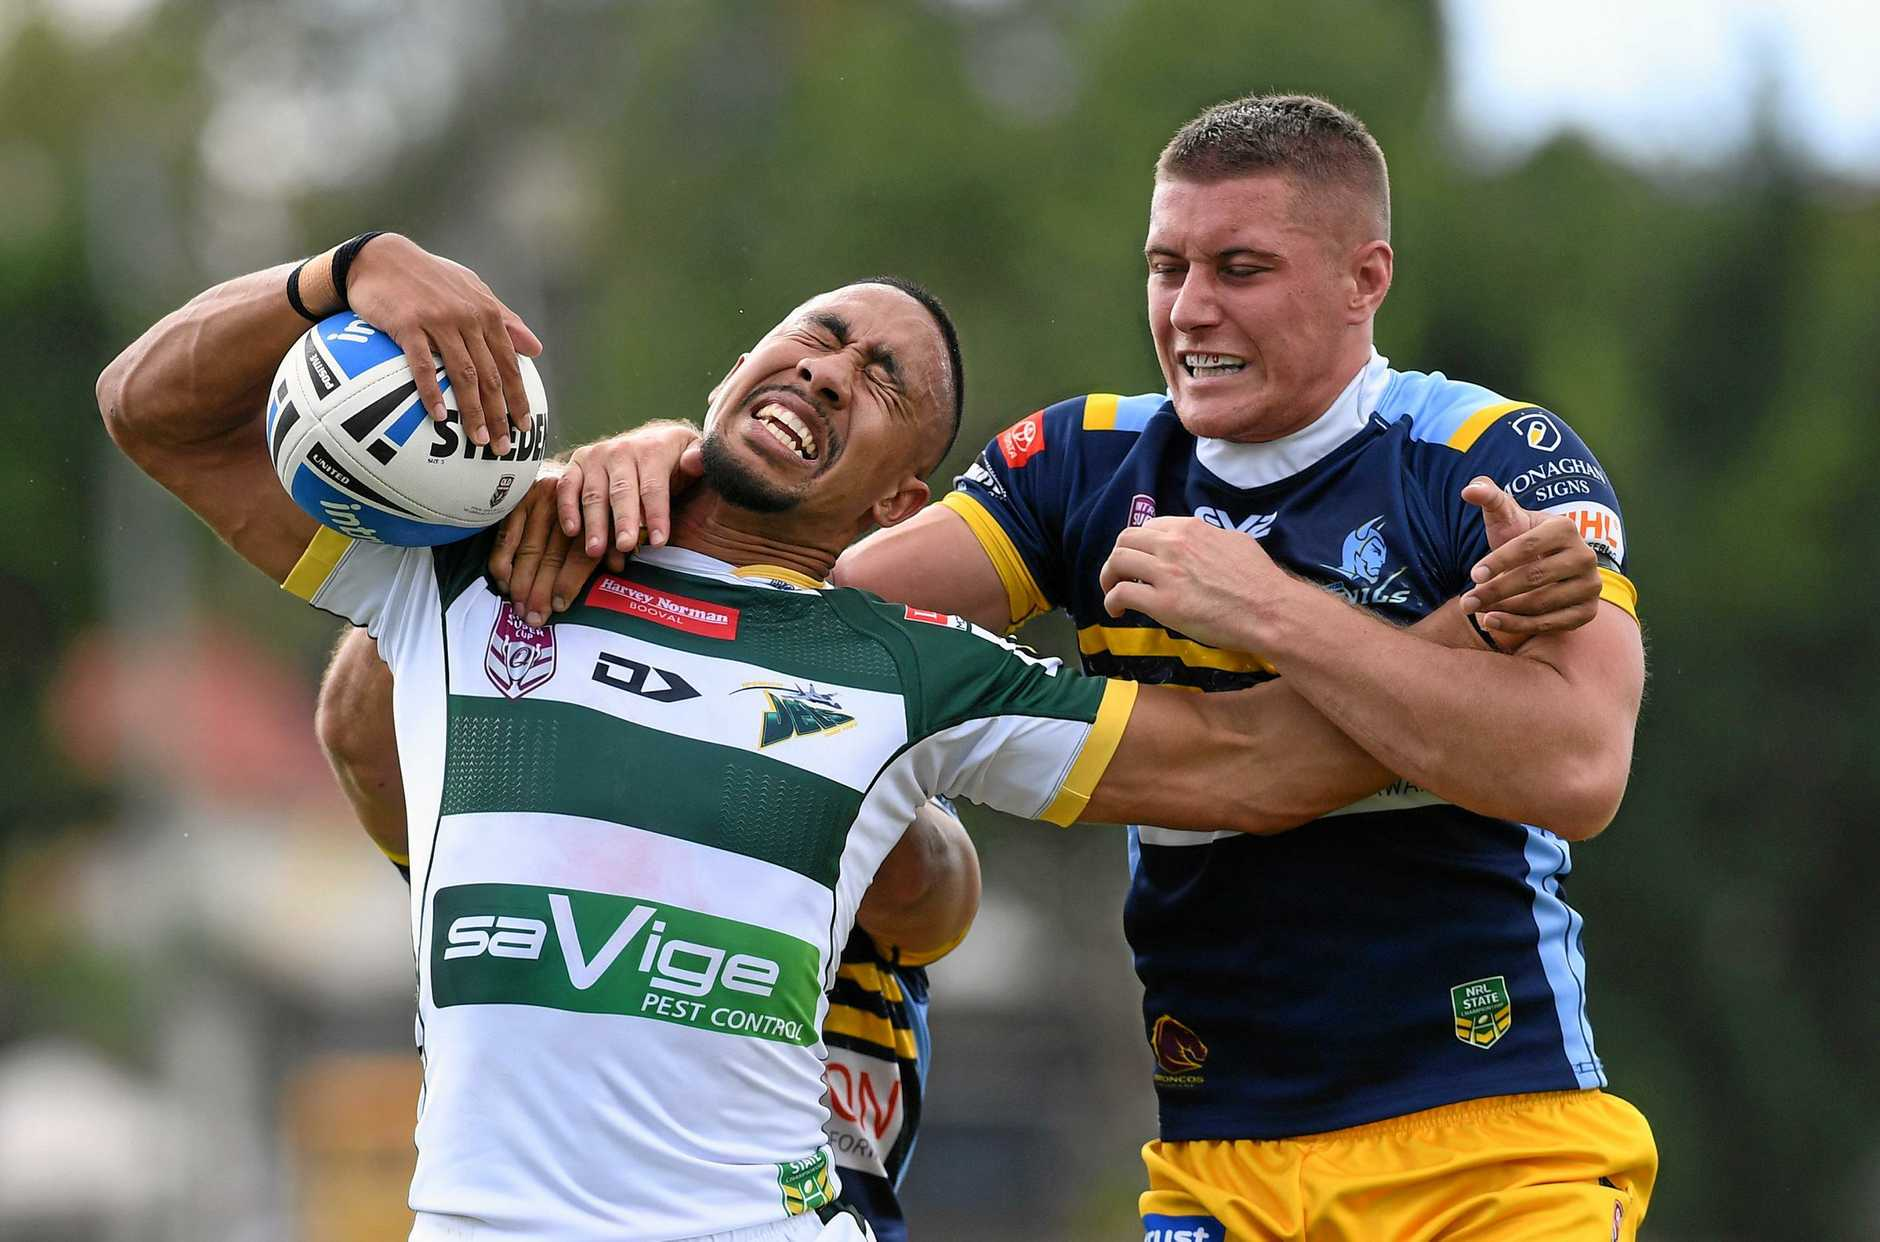 Jets halfback Julian Christian gets grabbed by the Norths tackler in today's game.